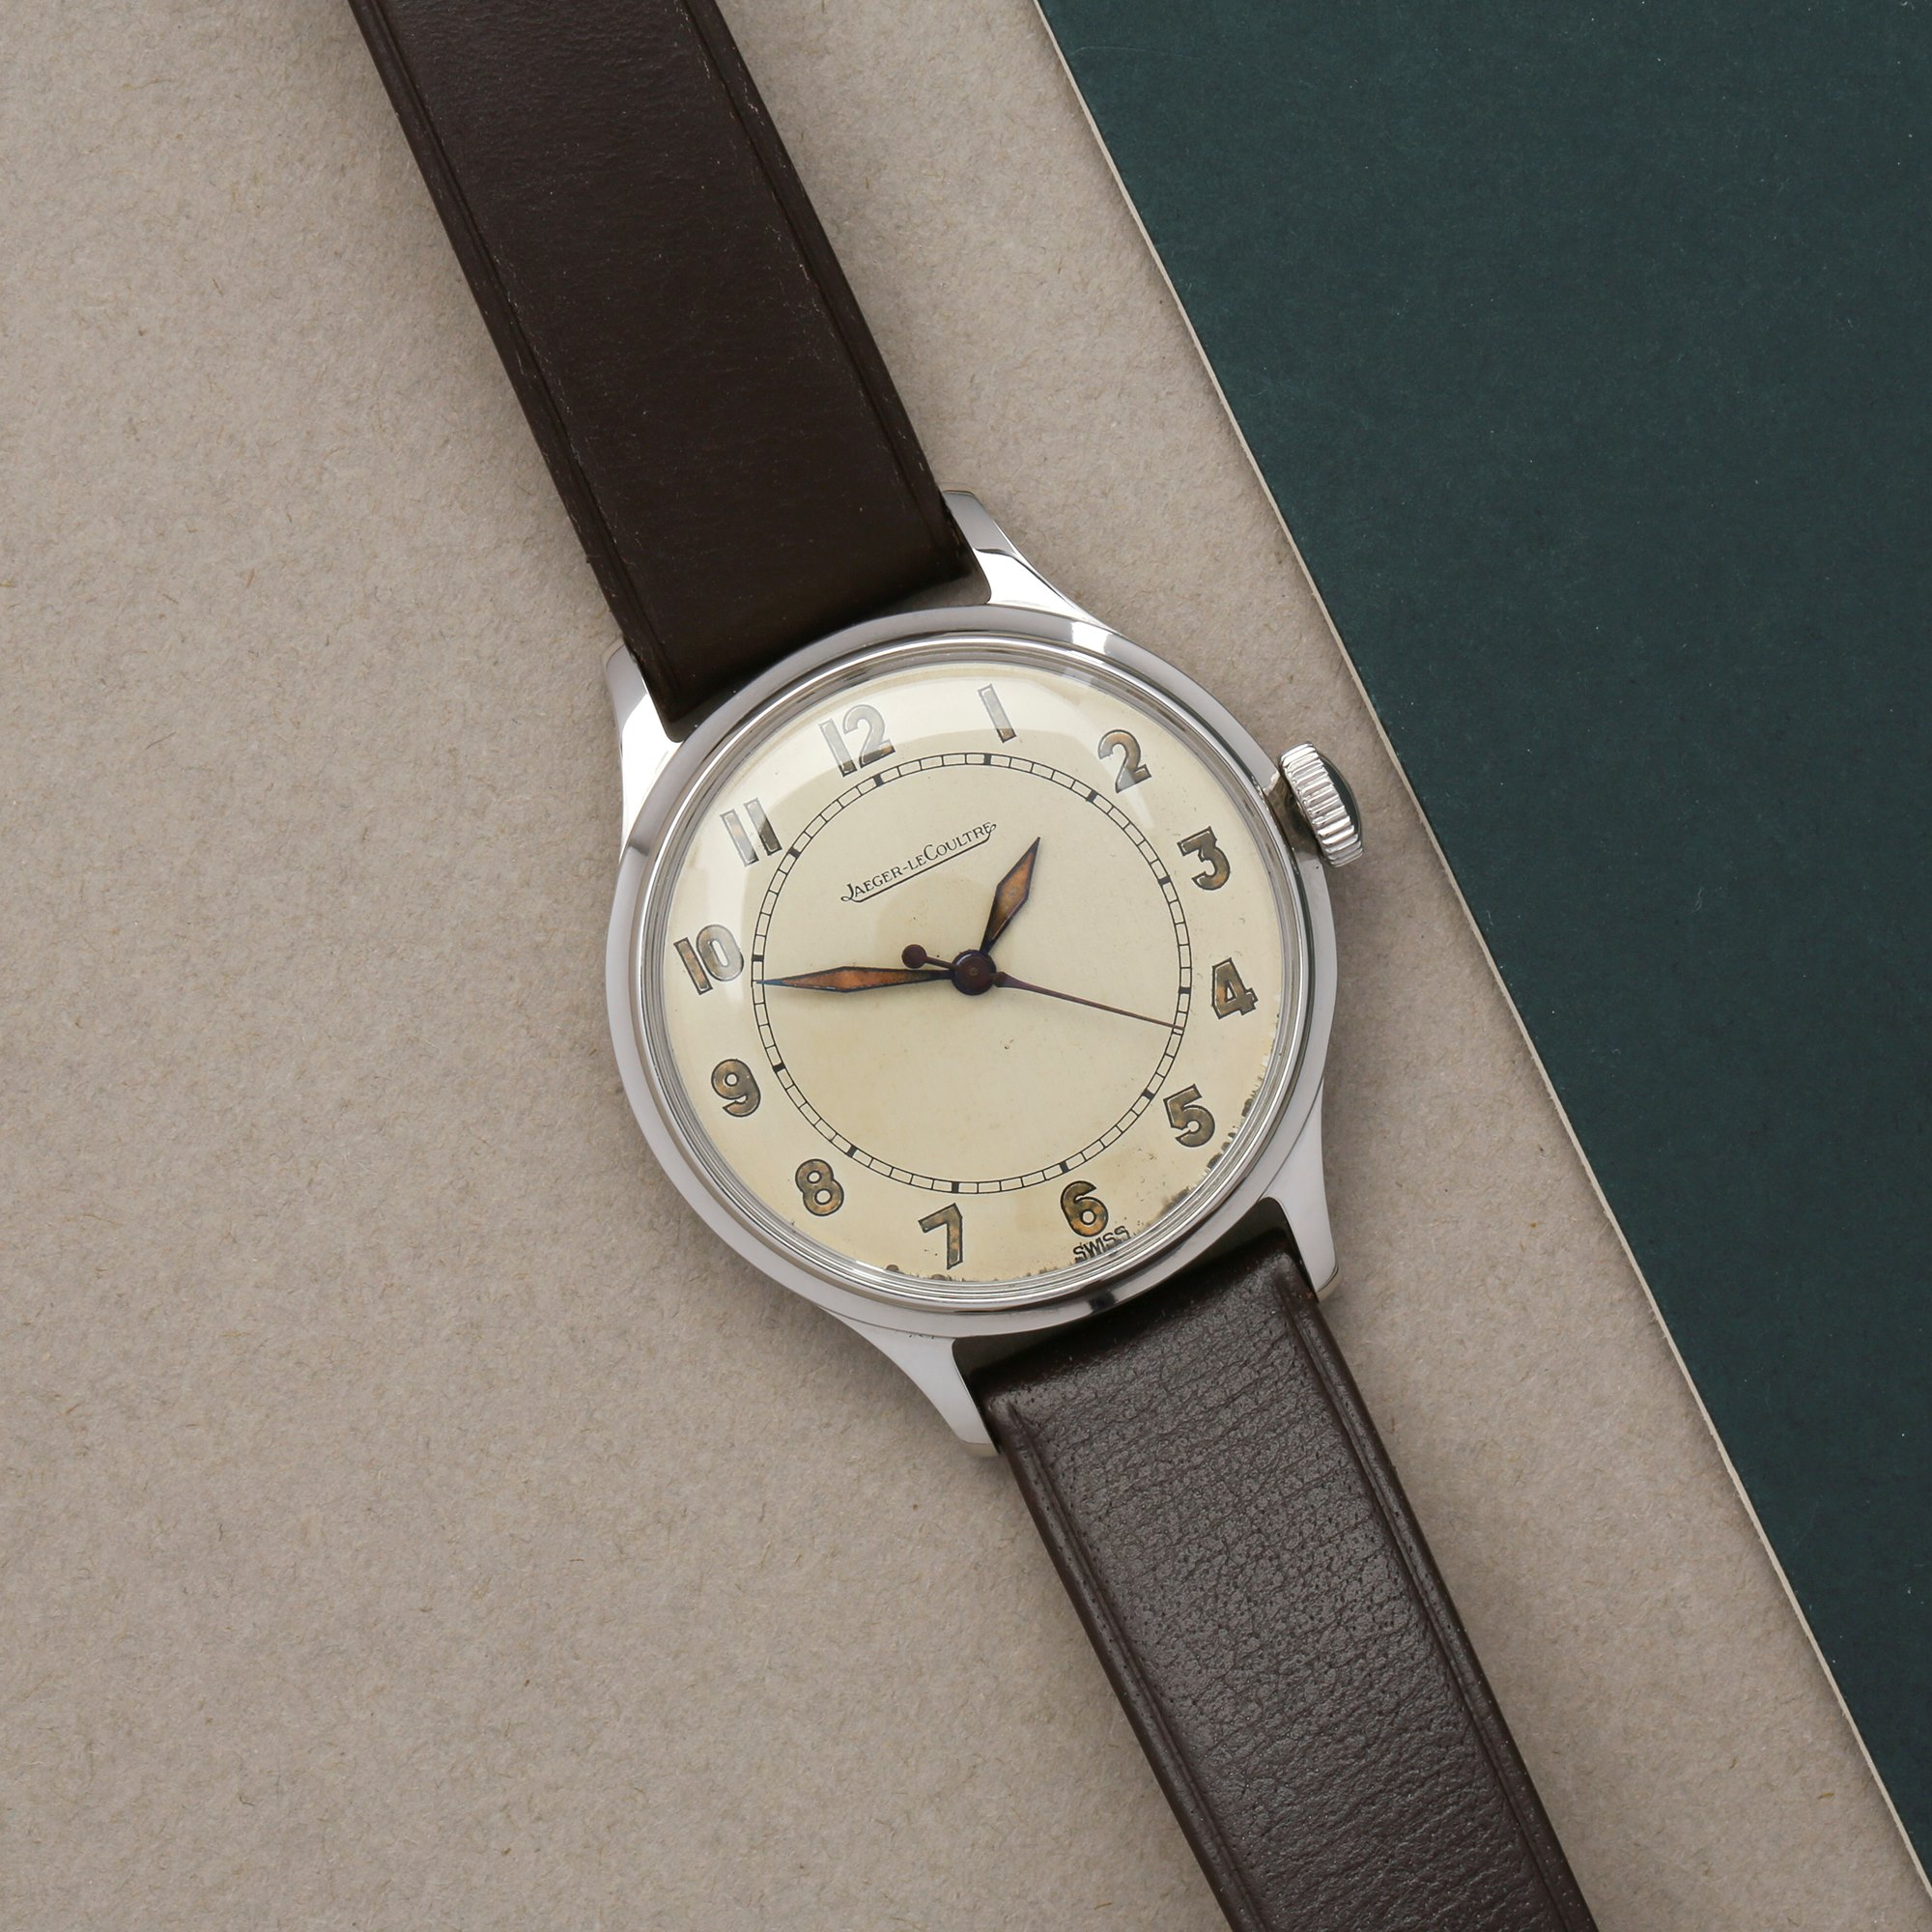 Jaeger-LeCoultre Vintage Roestvrij Staal P478